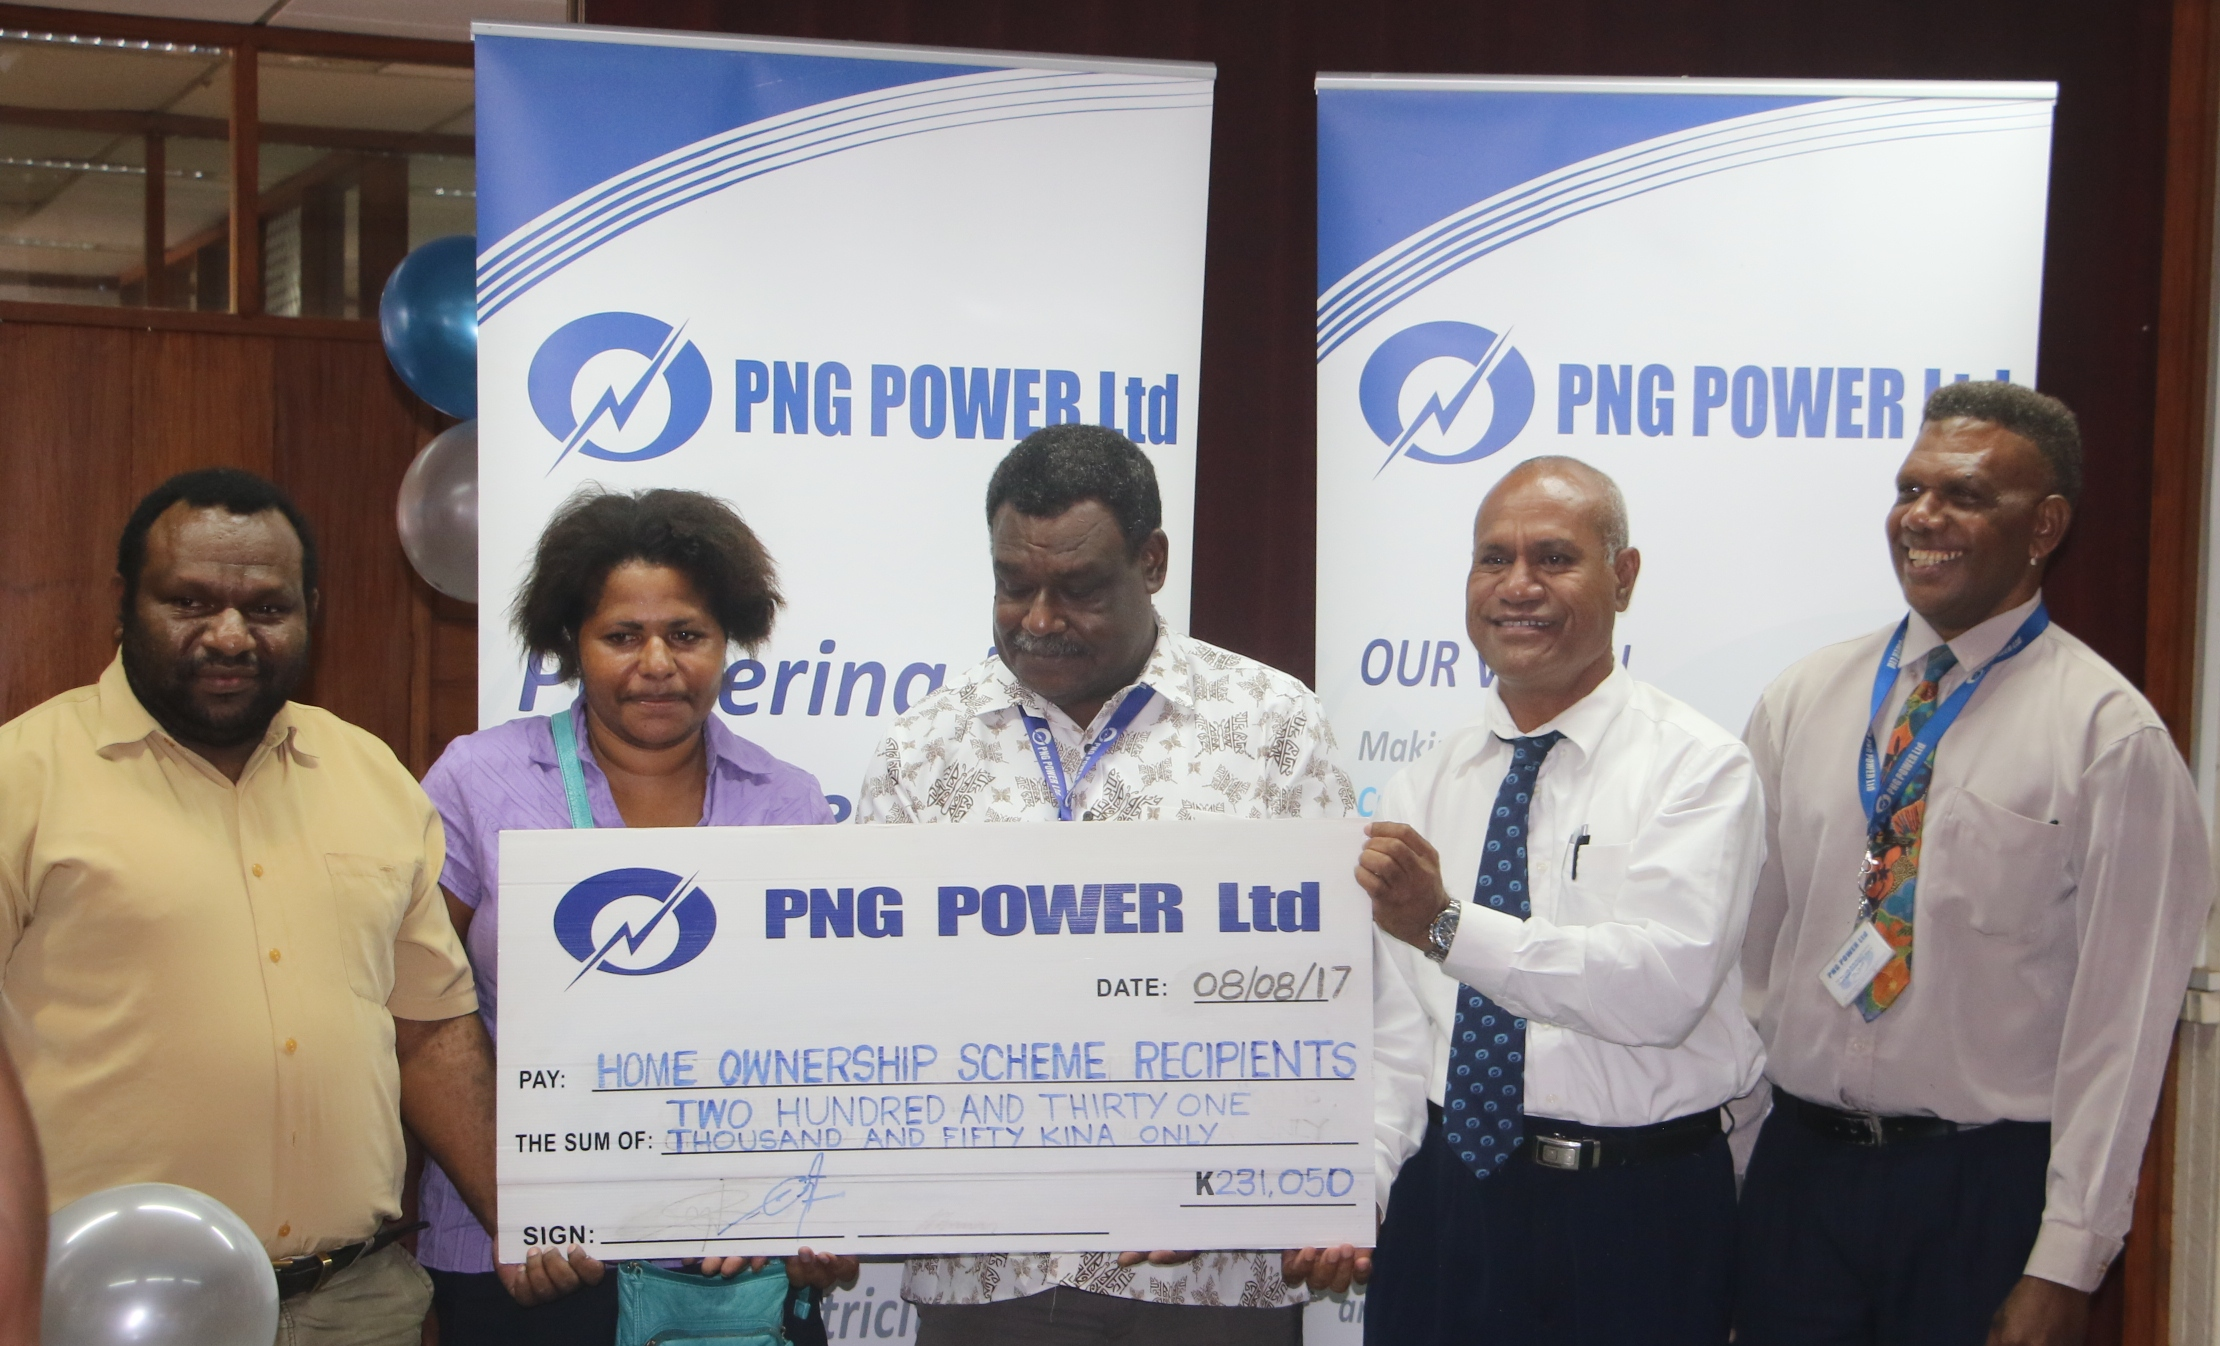 PNG Power Ltd Home Ownership Scheme launched